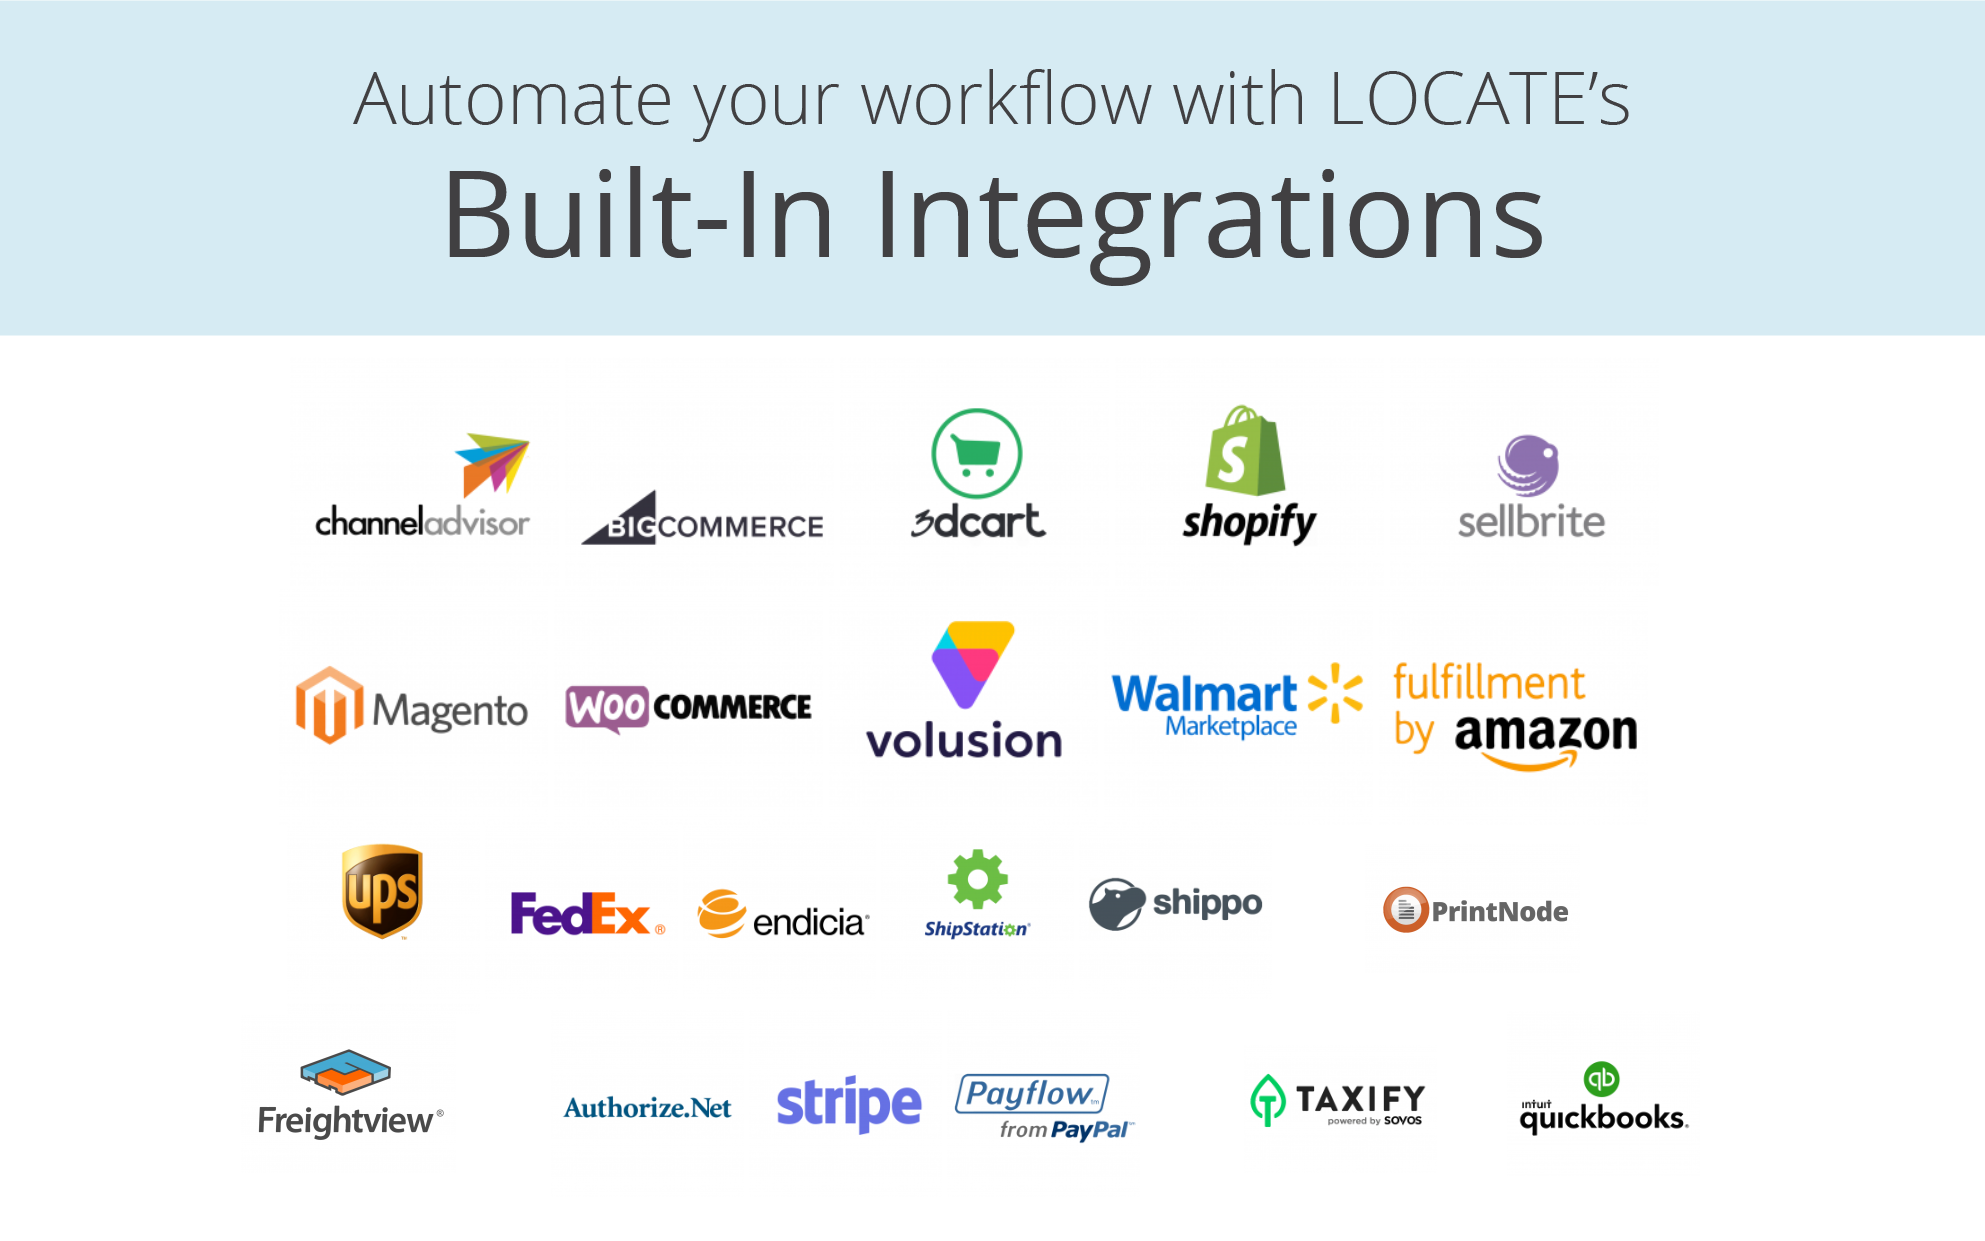 Streamline your business with LOCATE's 30+ native integrations.